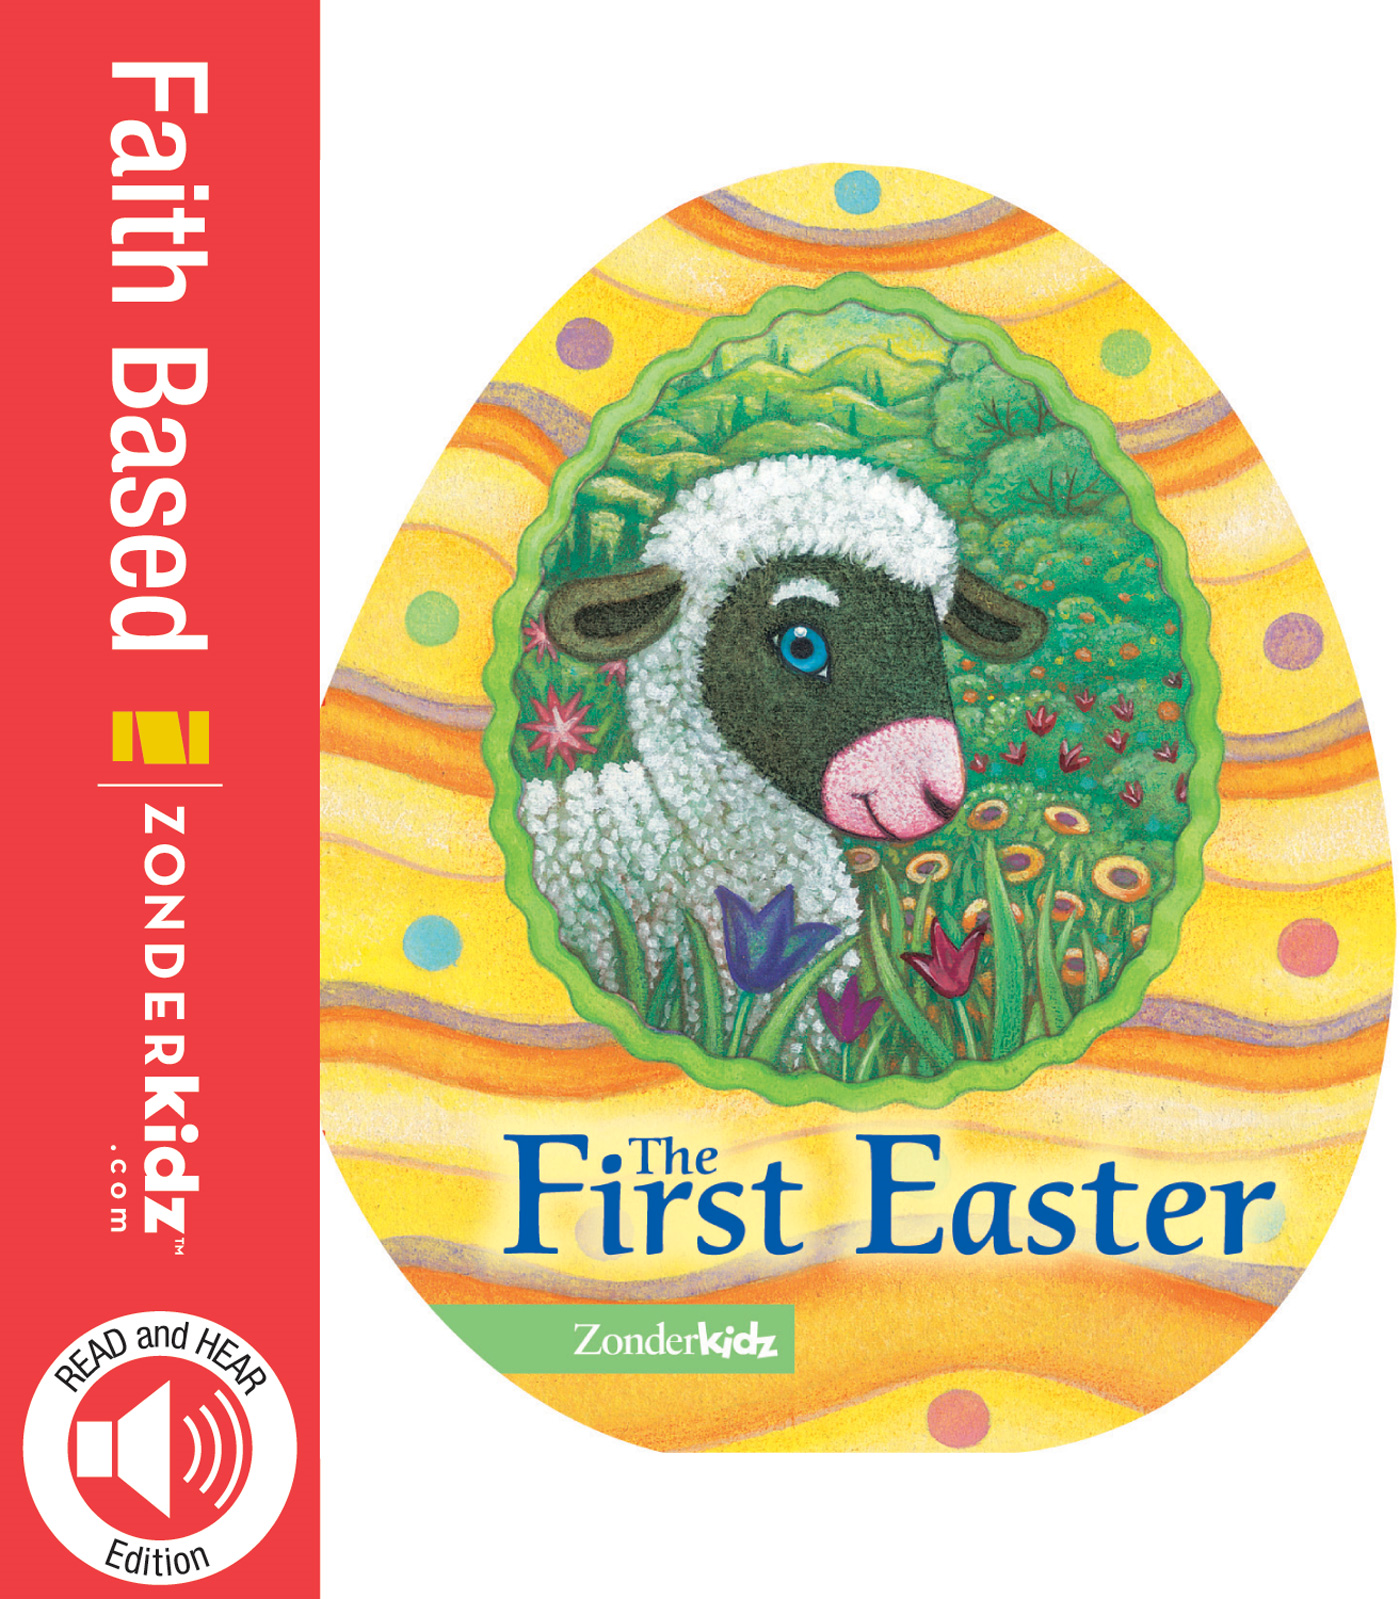 READ and HEAR edition: The First Easter